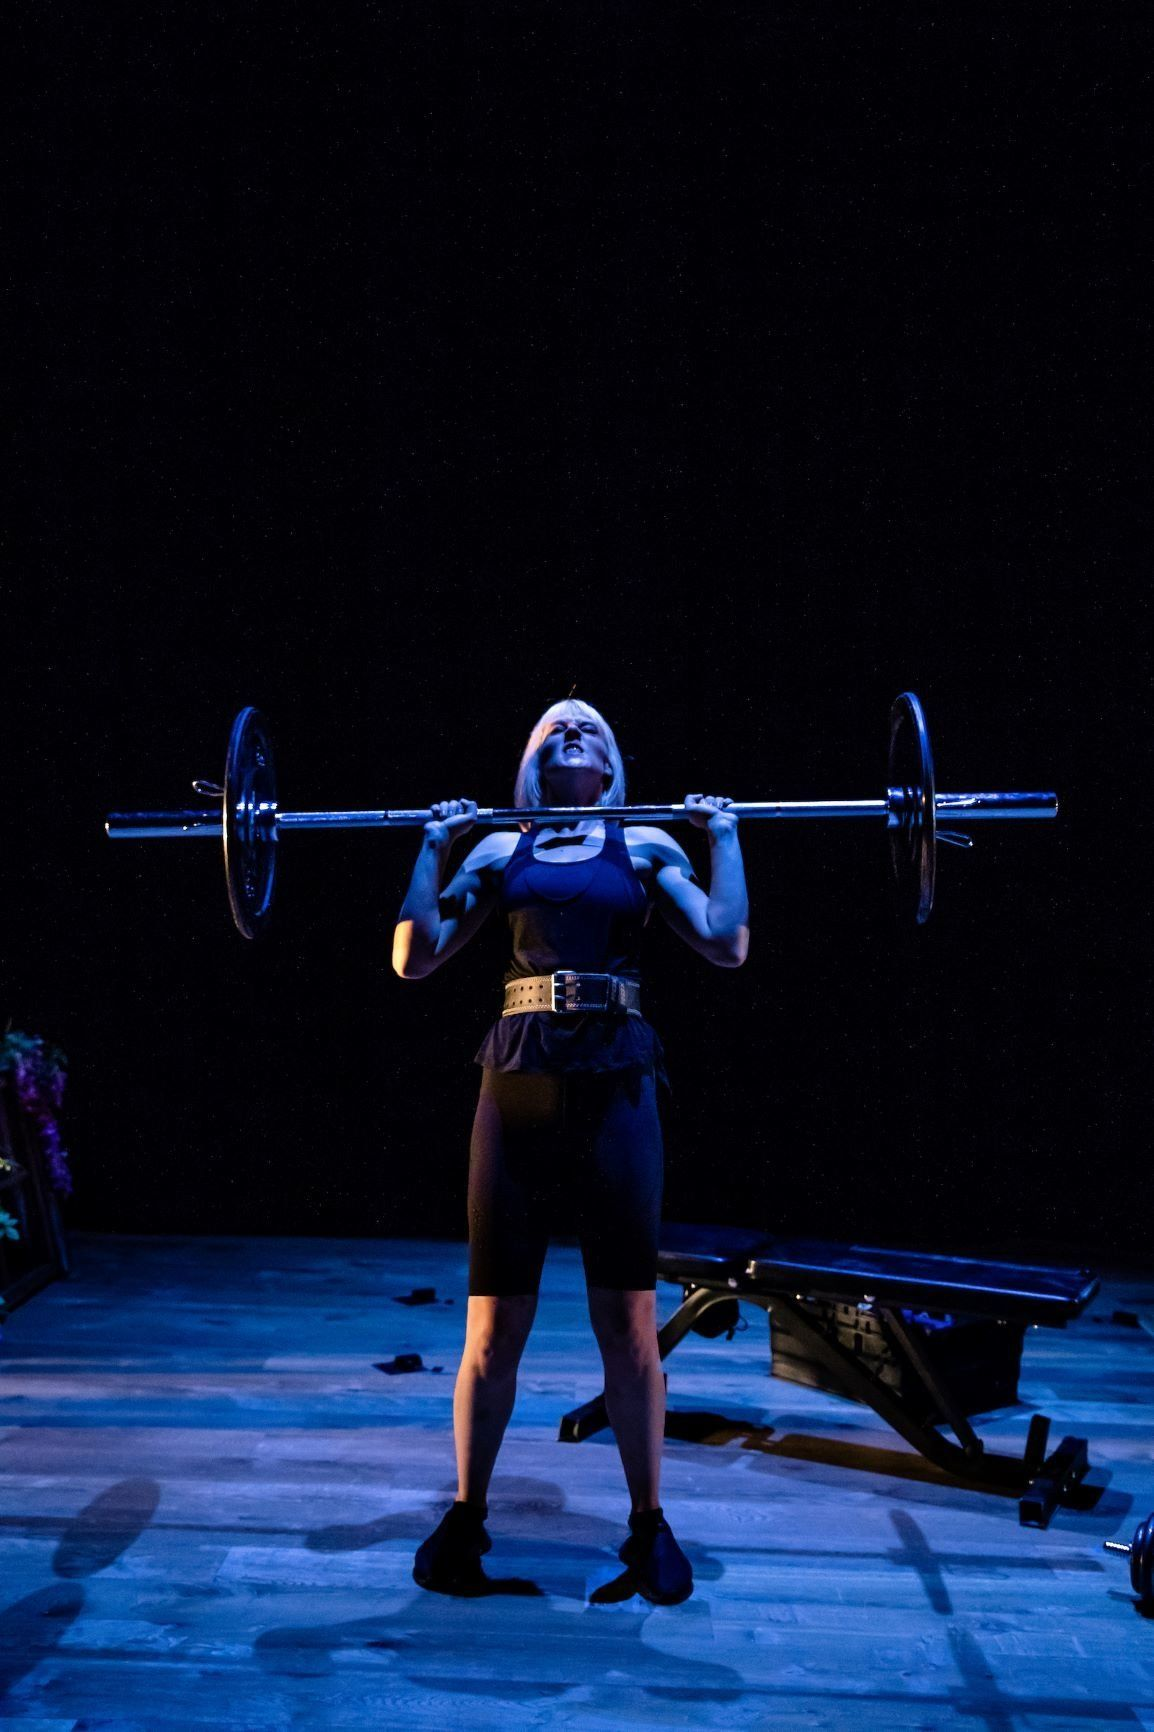 Bryony Kimmings: 'Weightlifting Helped Me Feel In Control Of My